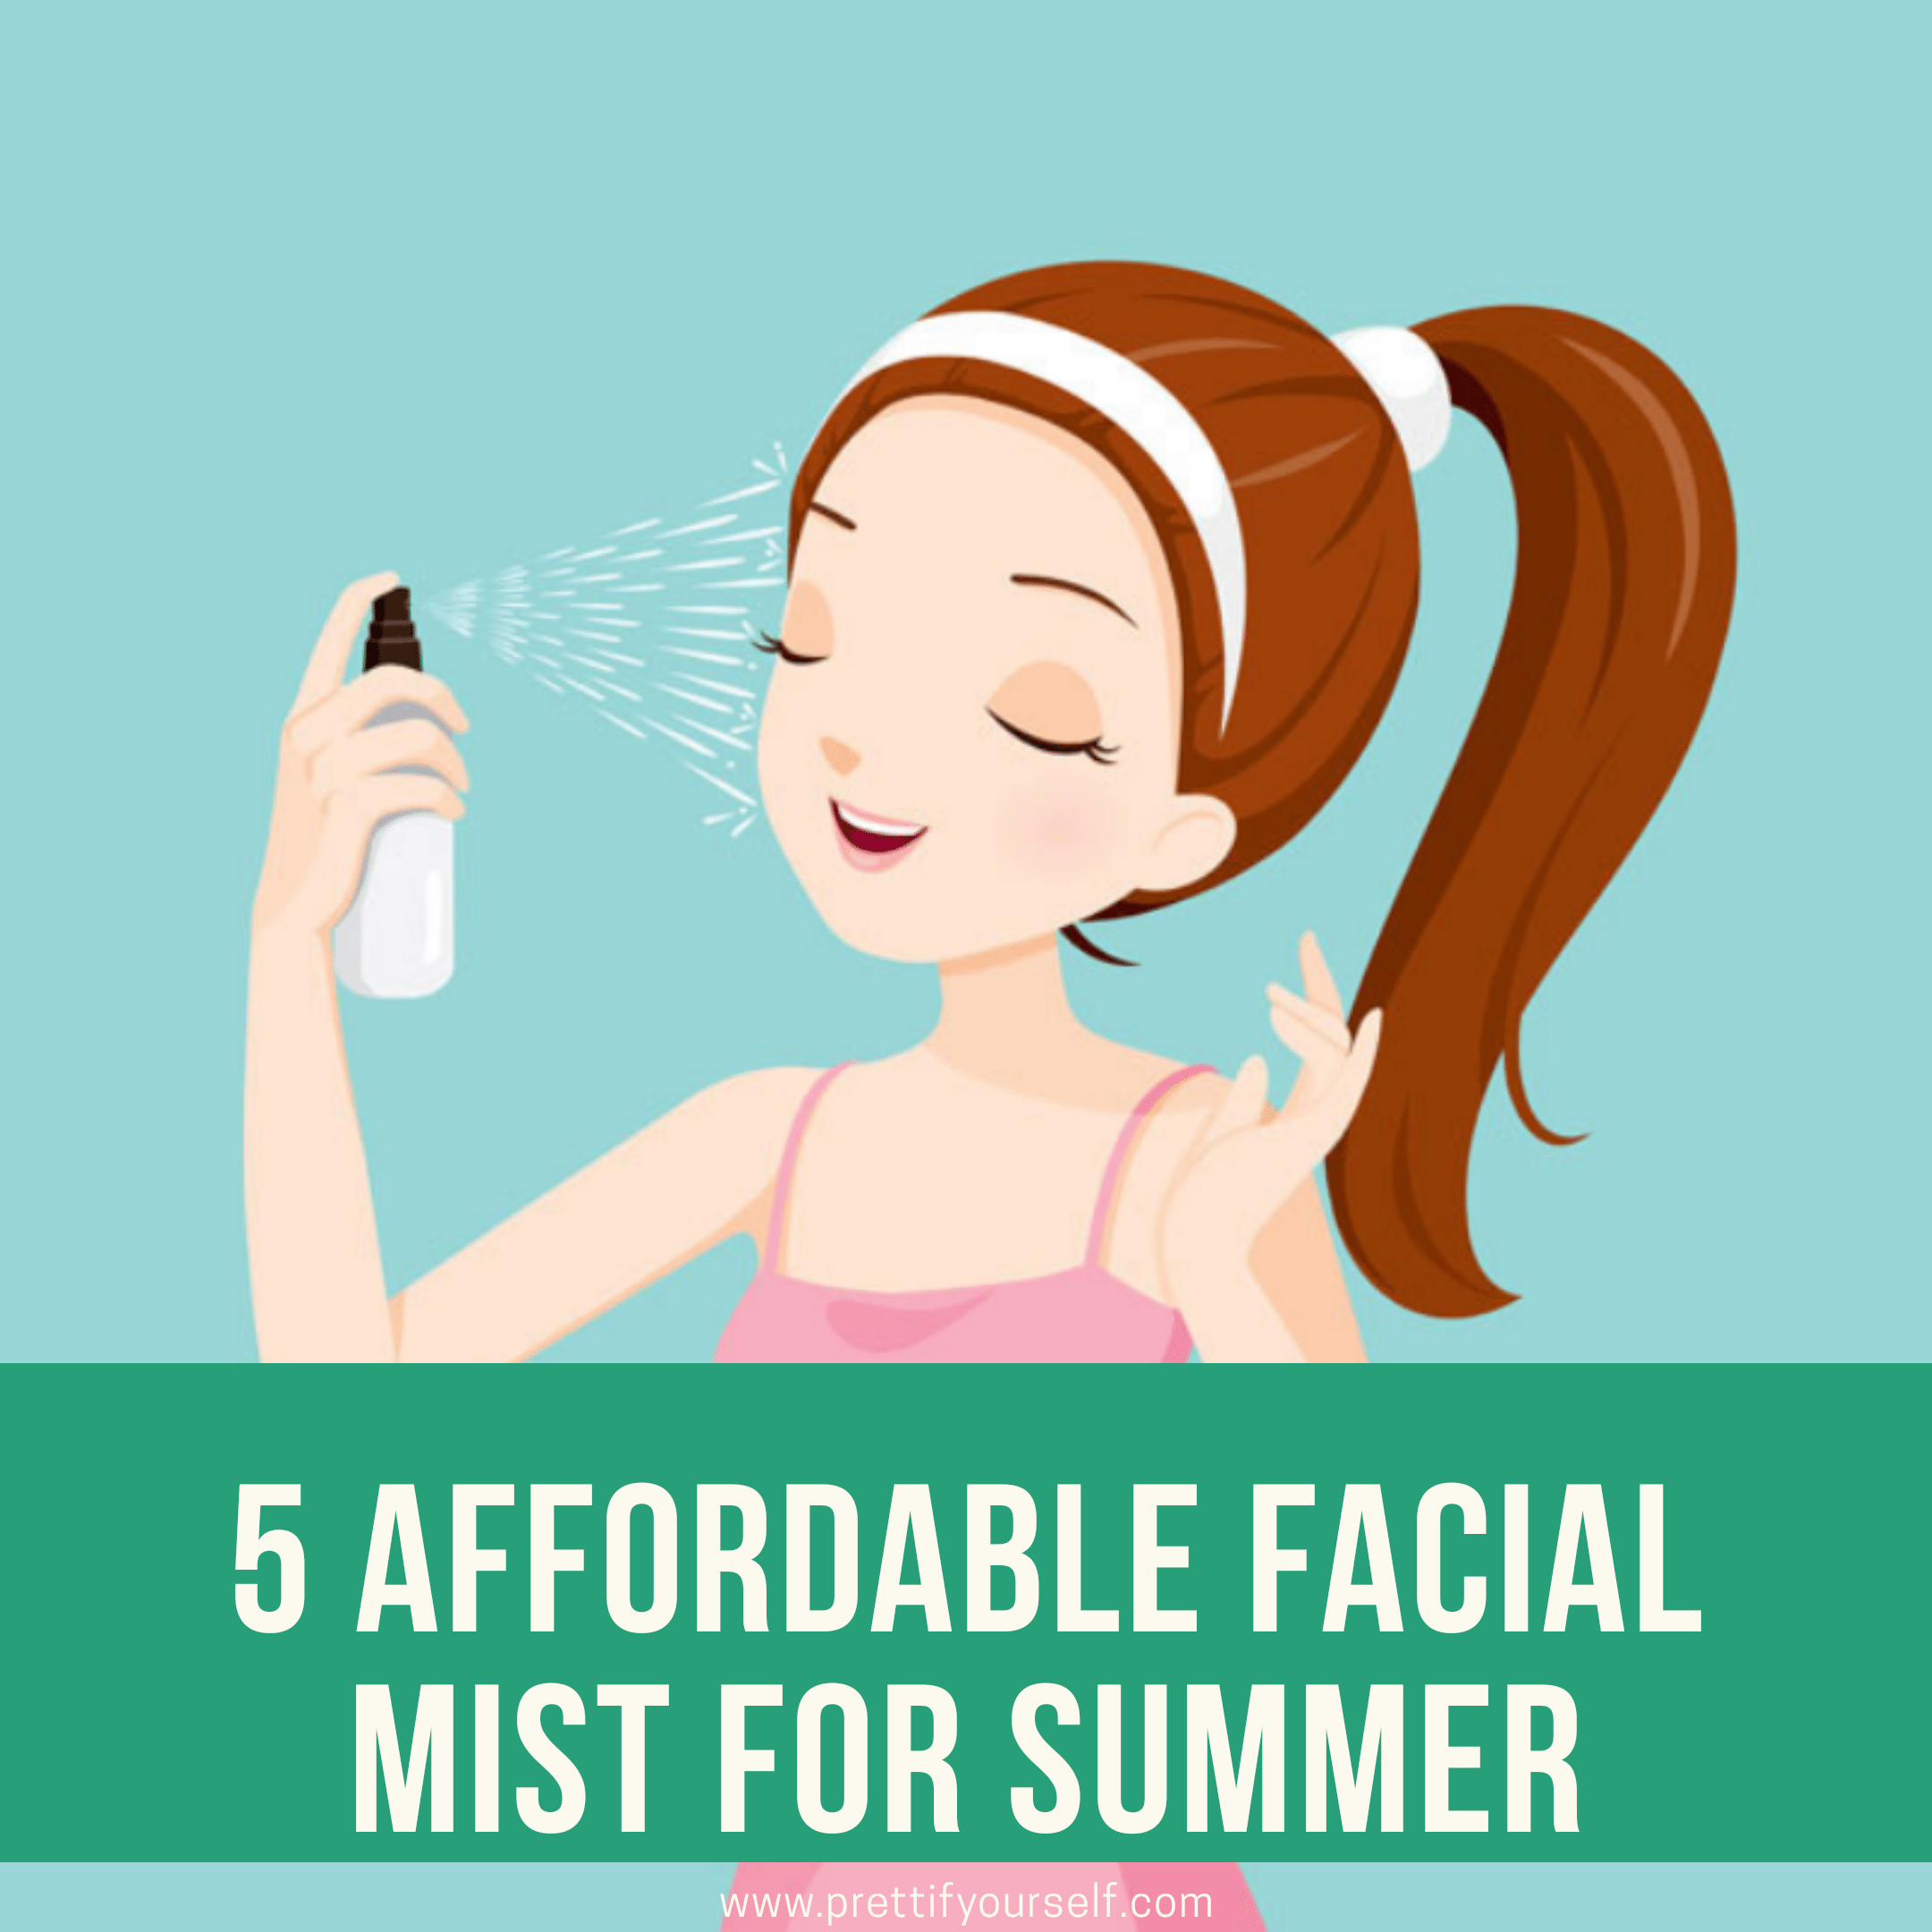 5 affordable facial mist for summer